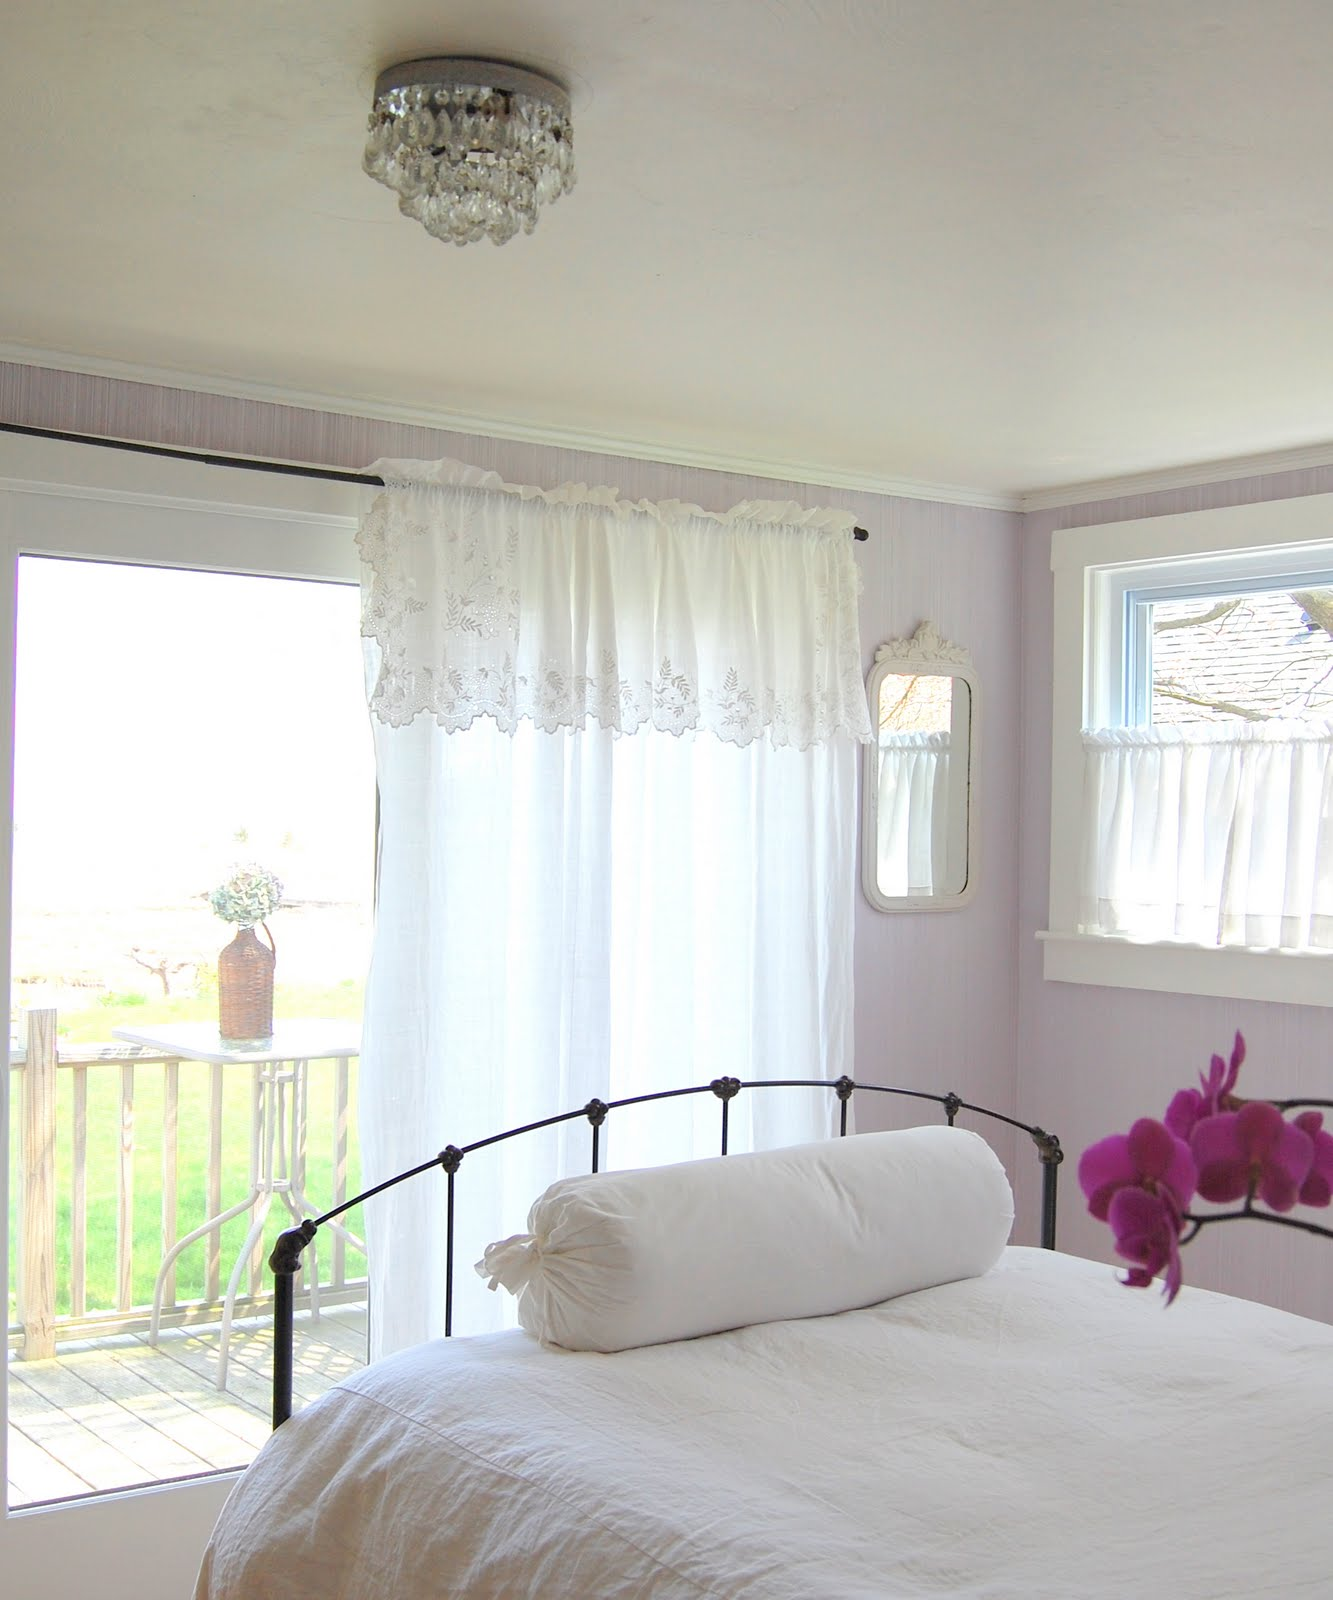 Bedroom Paint: Tresor Trouve: French Lavender Gray Walls...check